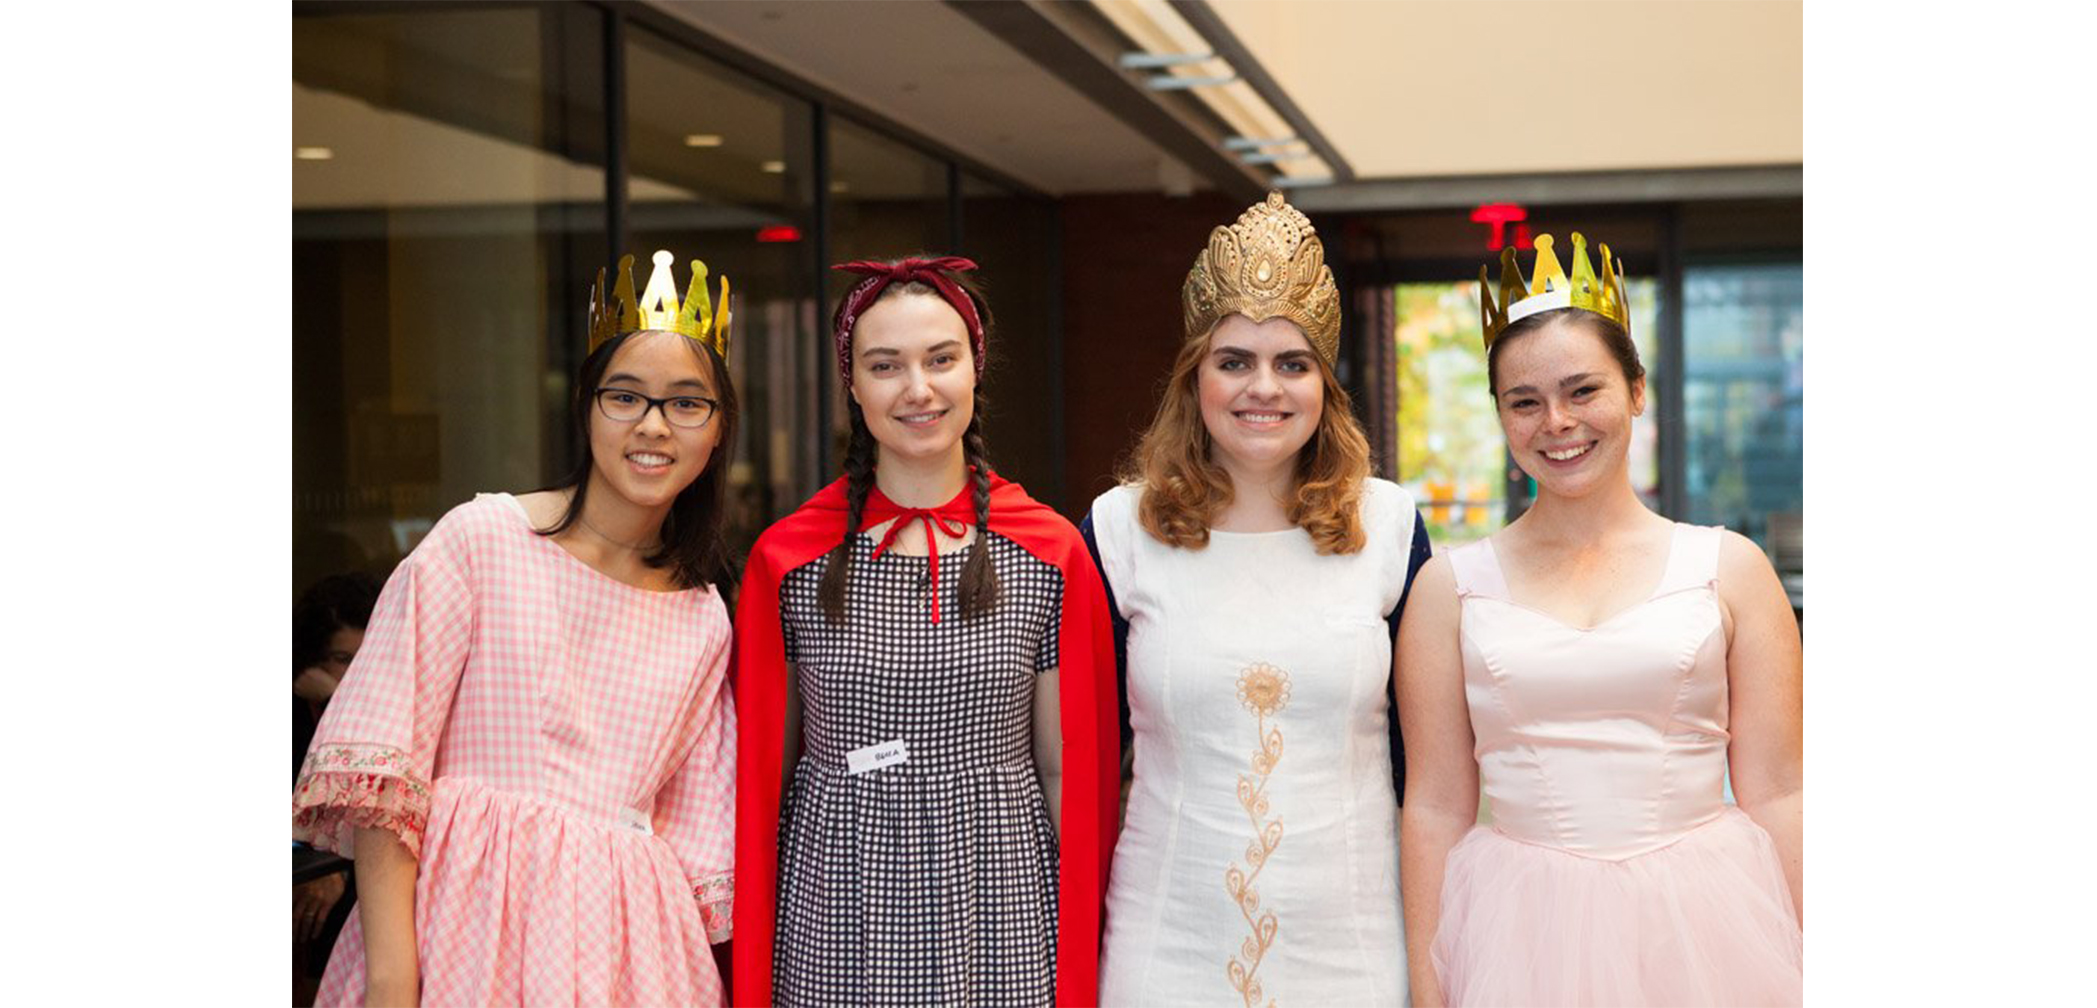 Four students with homemade crowns on in SCMA atrium